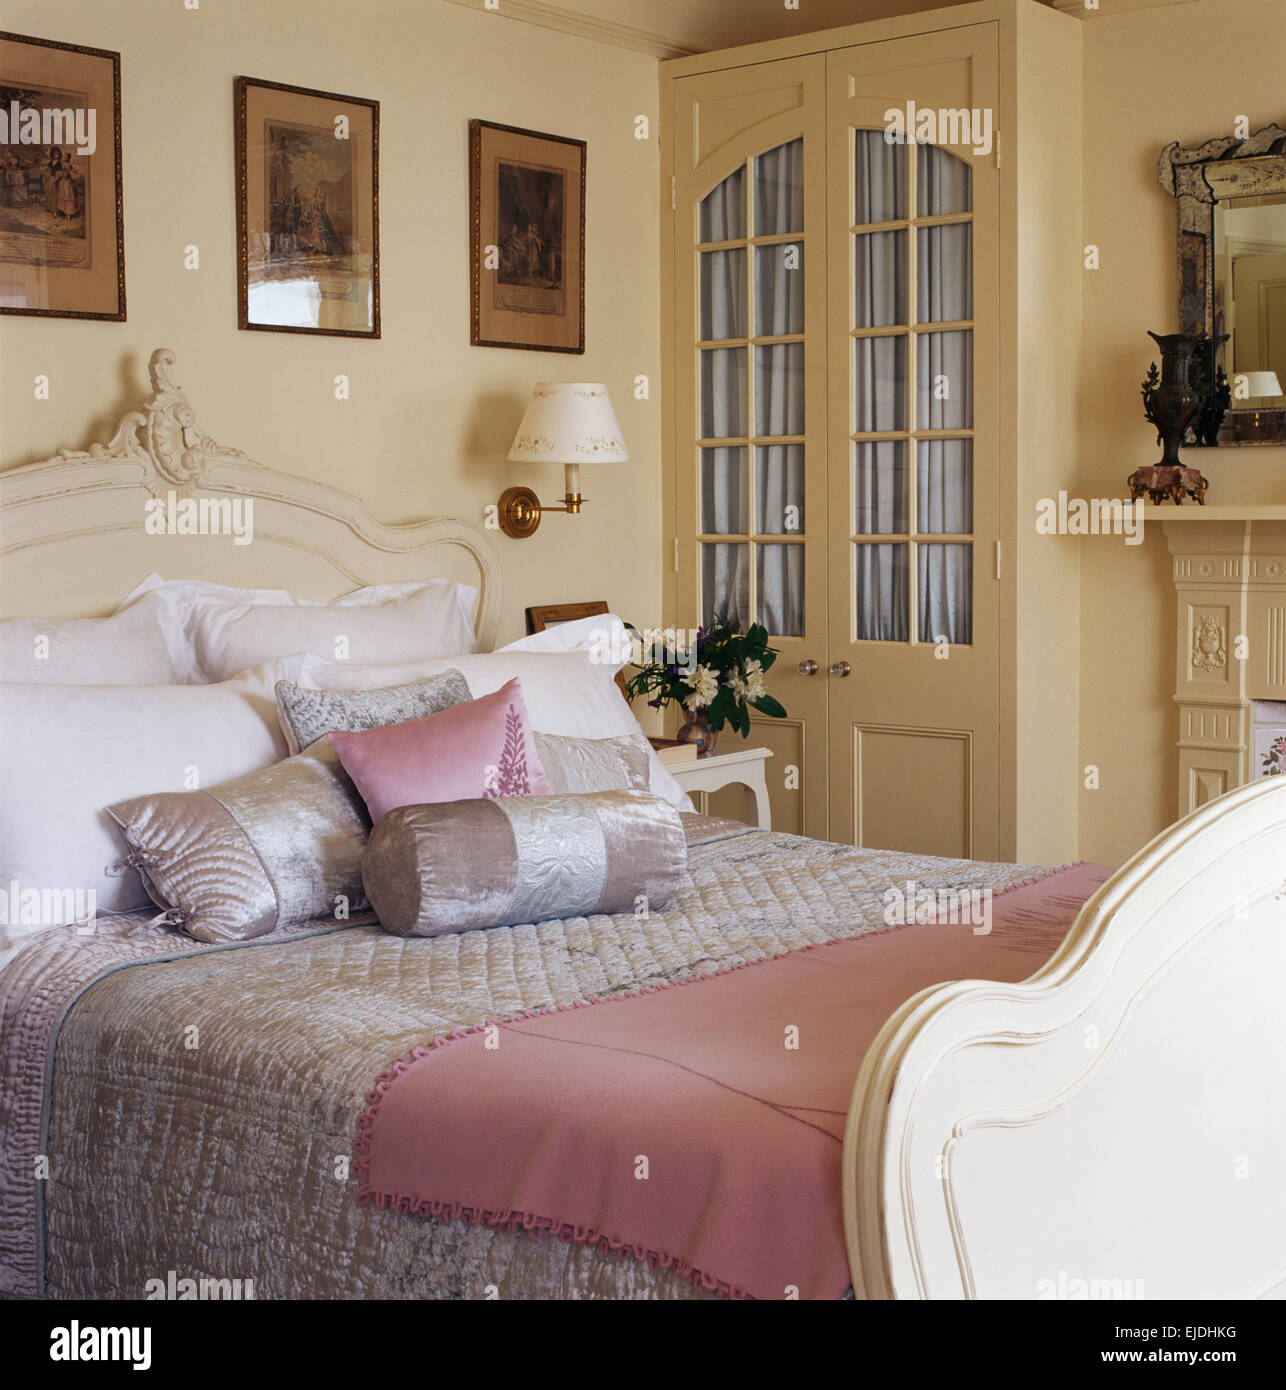 https www alamy com stock photo satin and silk bolster cushions with pink throw on painted bed in 80204532 html